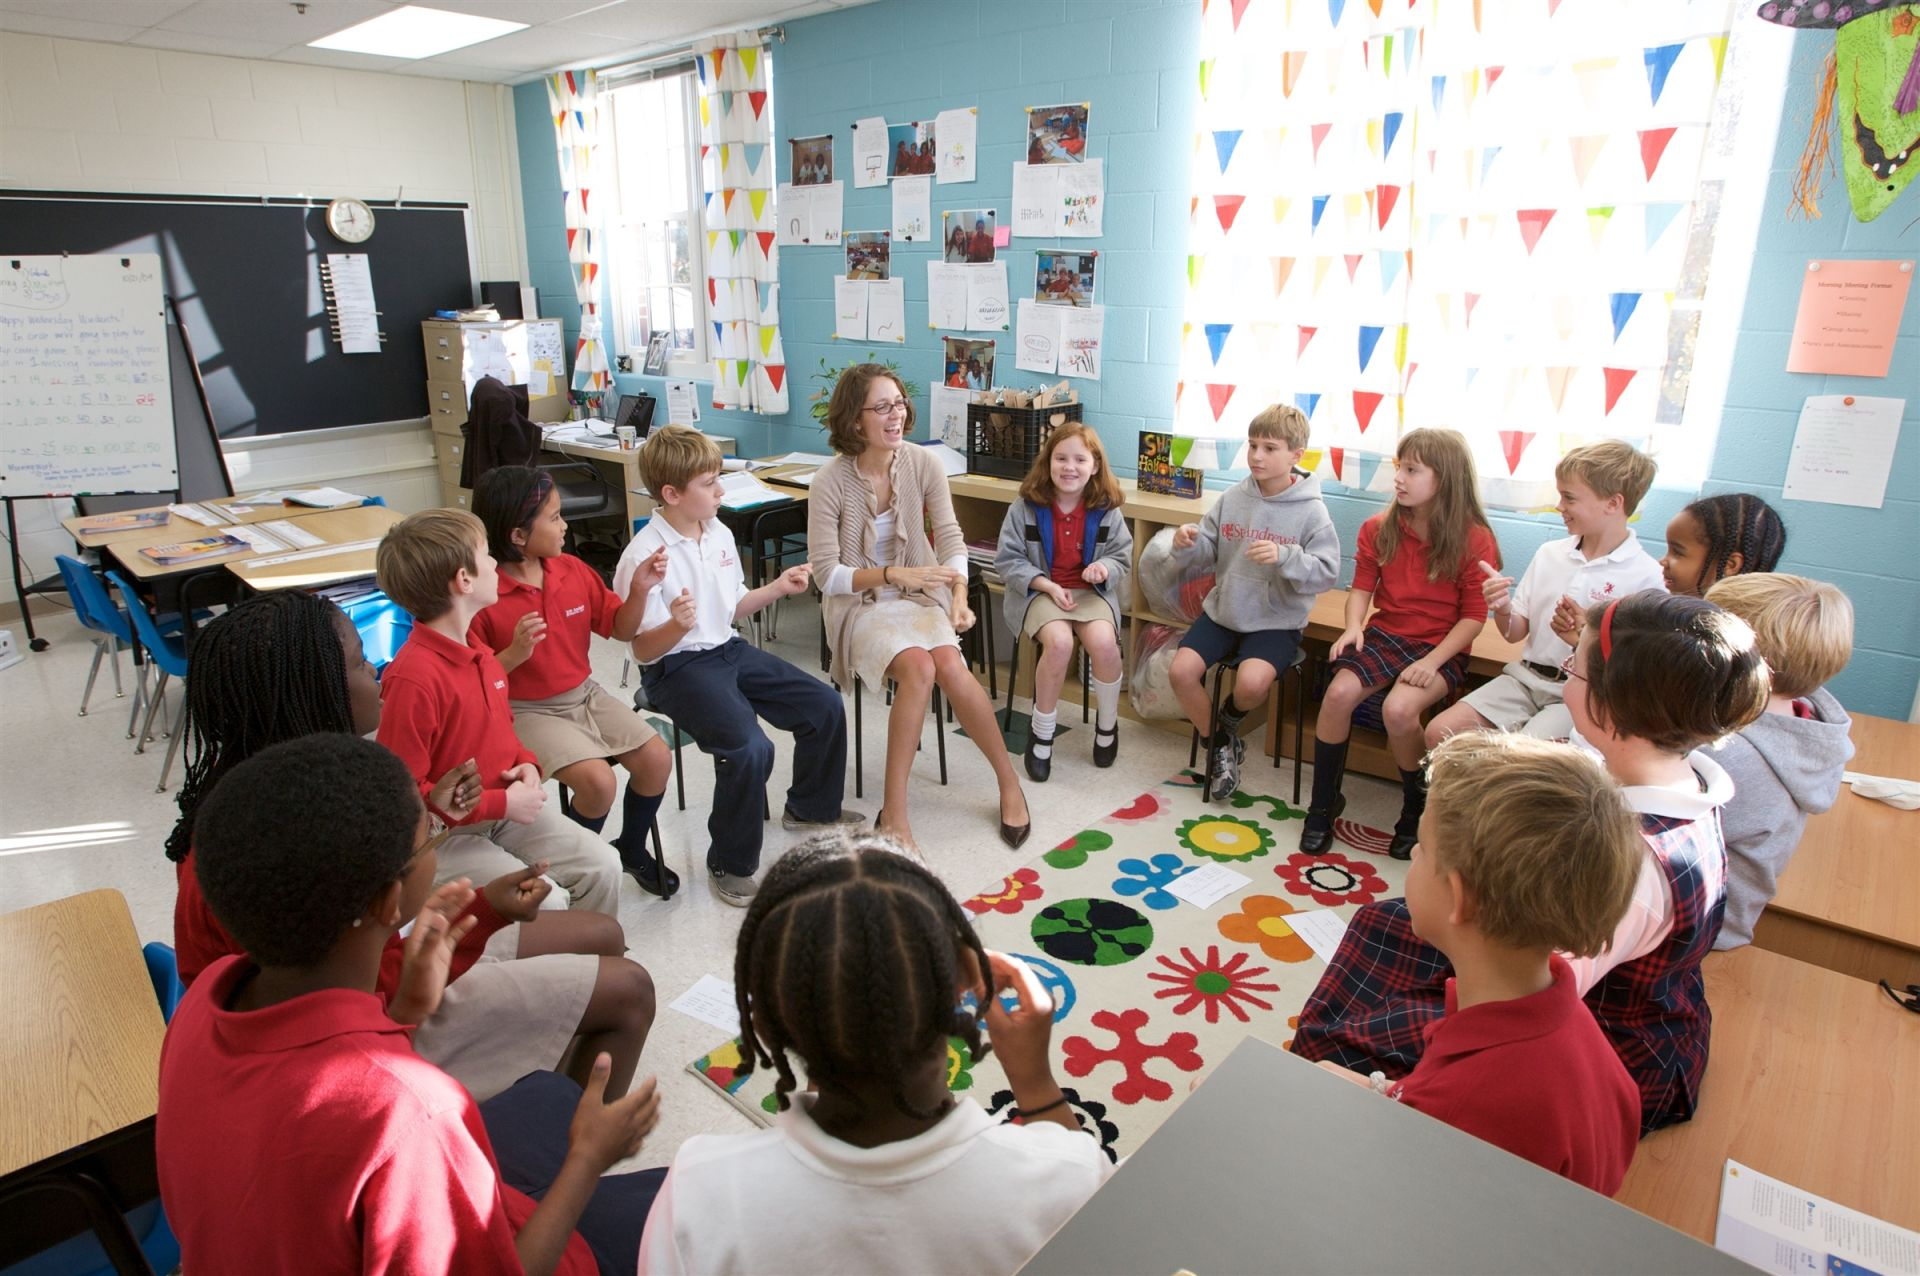 Lower School students gathering in a circle with teacher - St. Andrew's Episcopal School